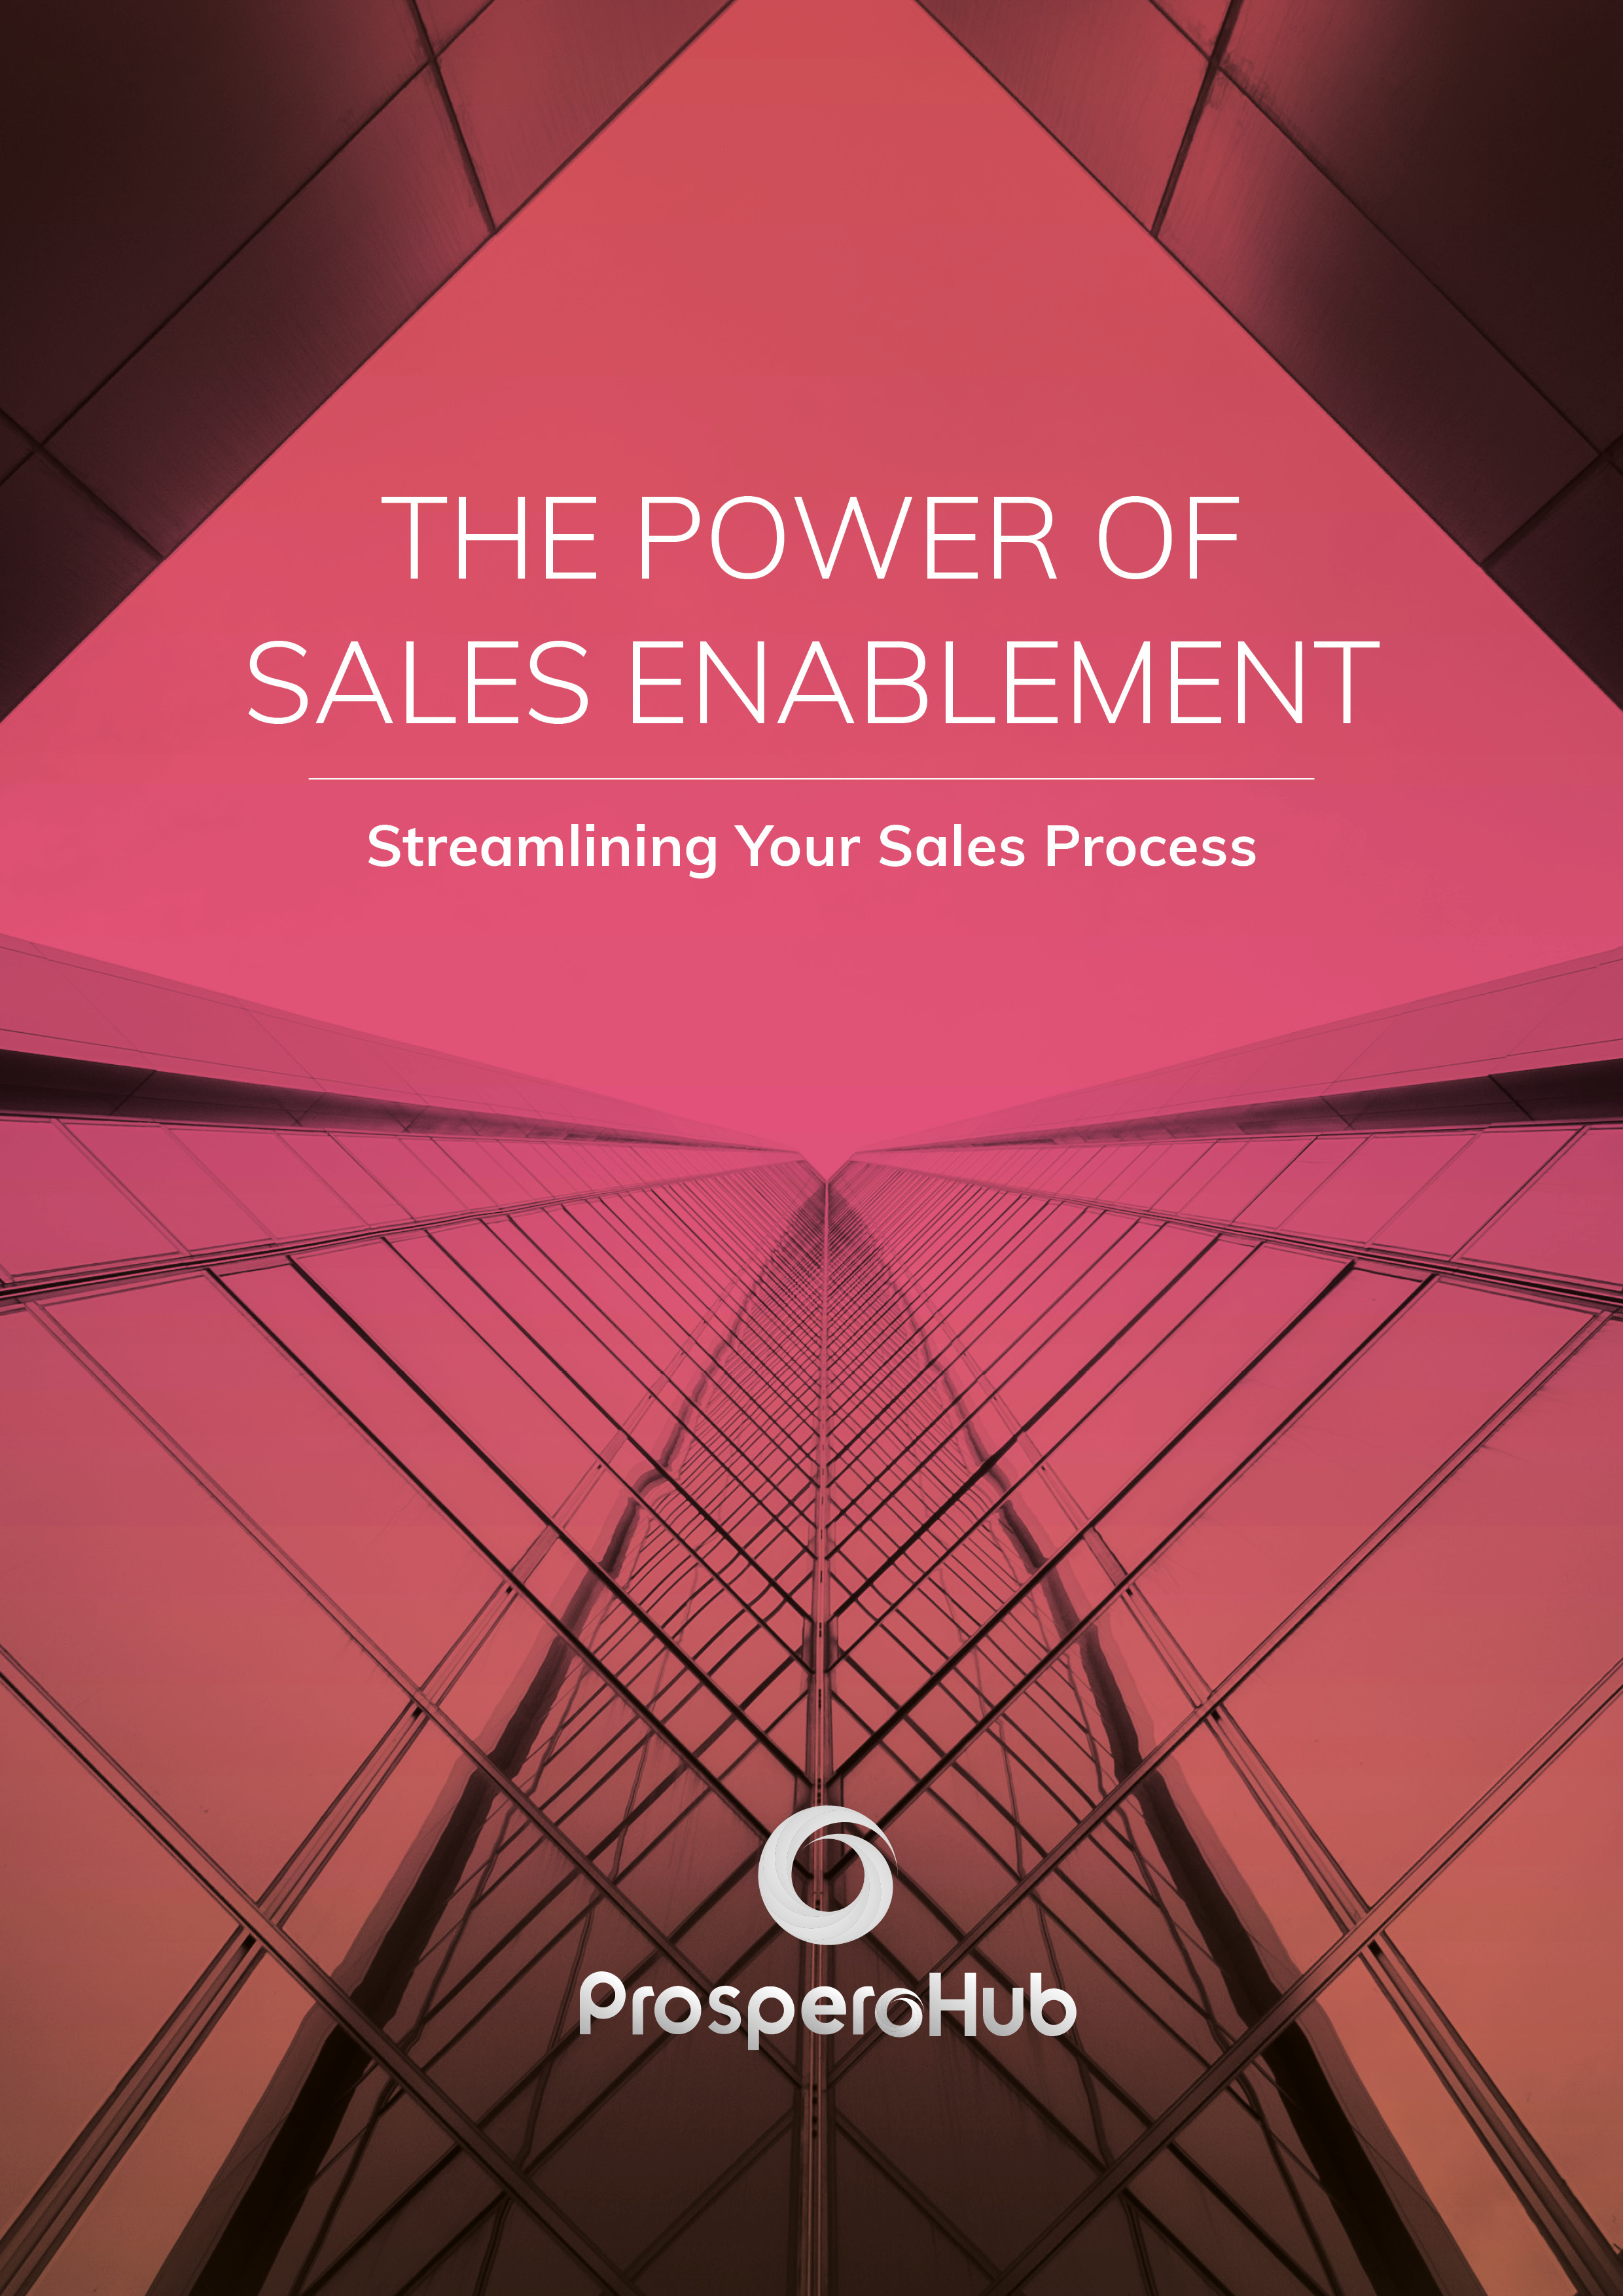 ProsperoHub - eBook - The Power of Sales Enablement - Cover